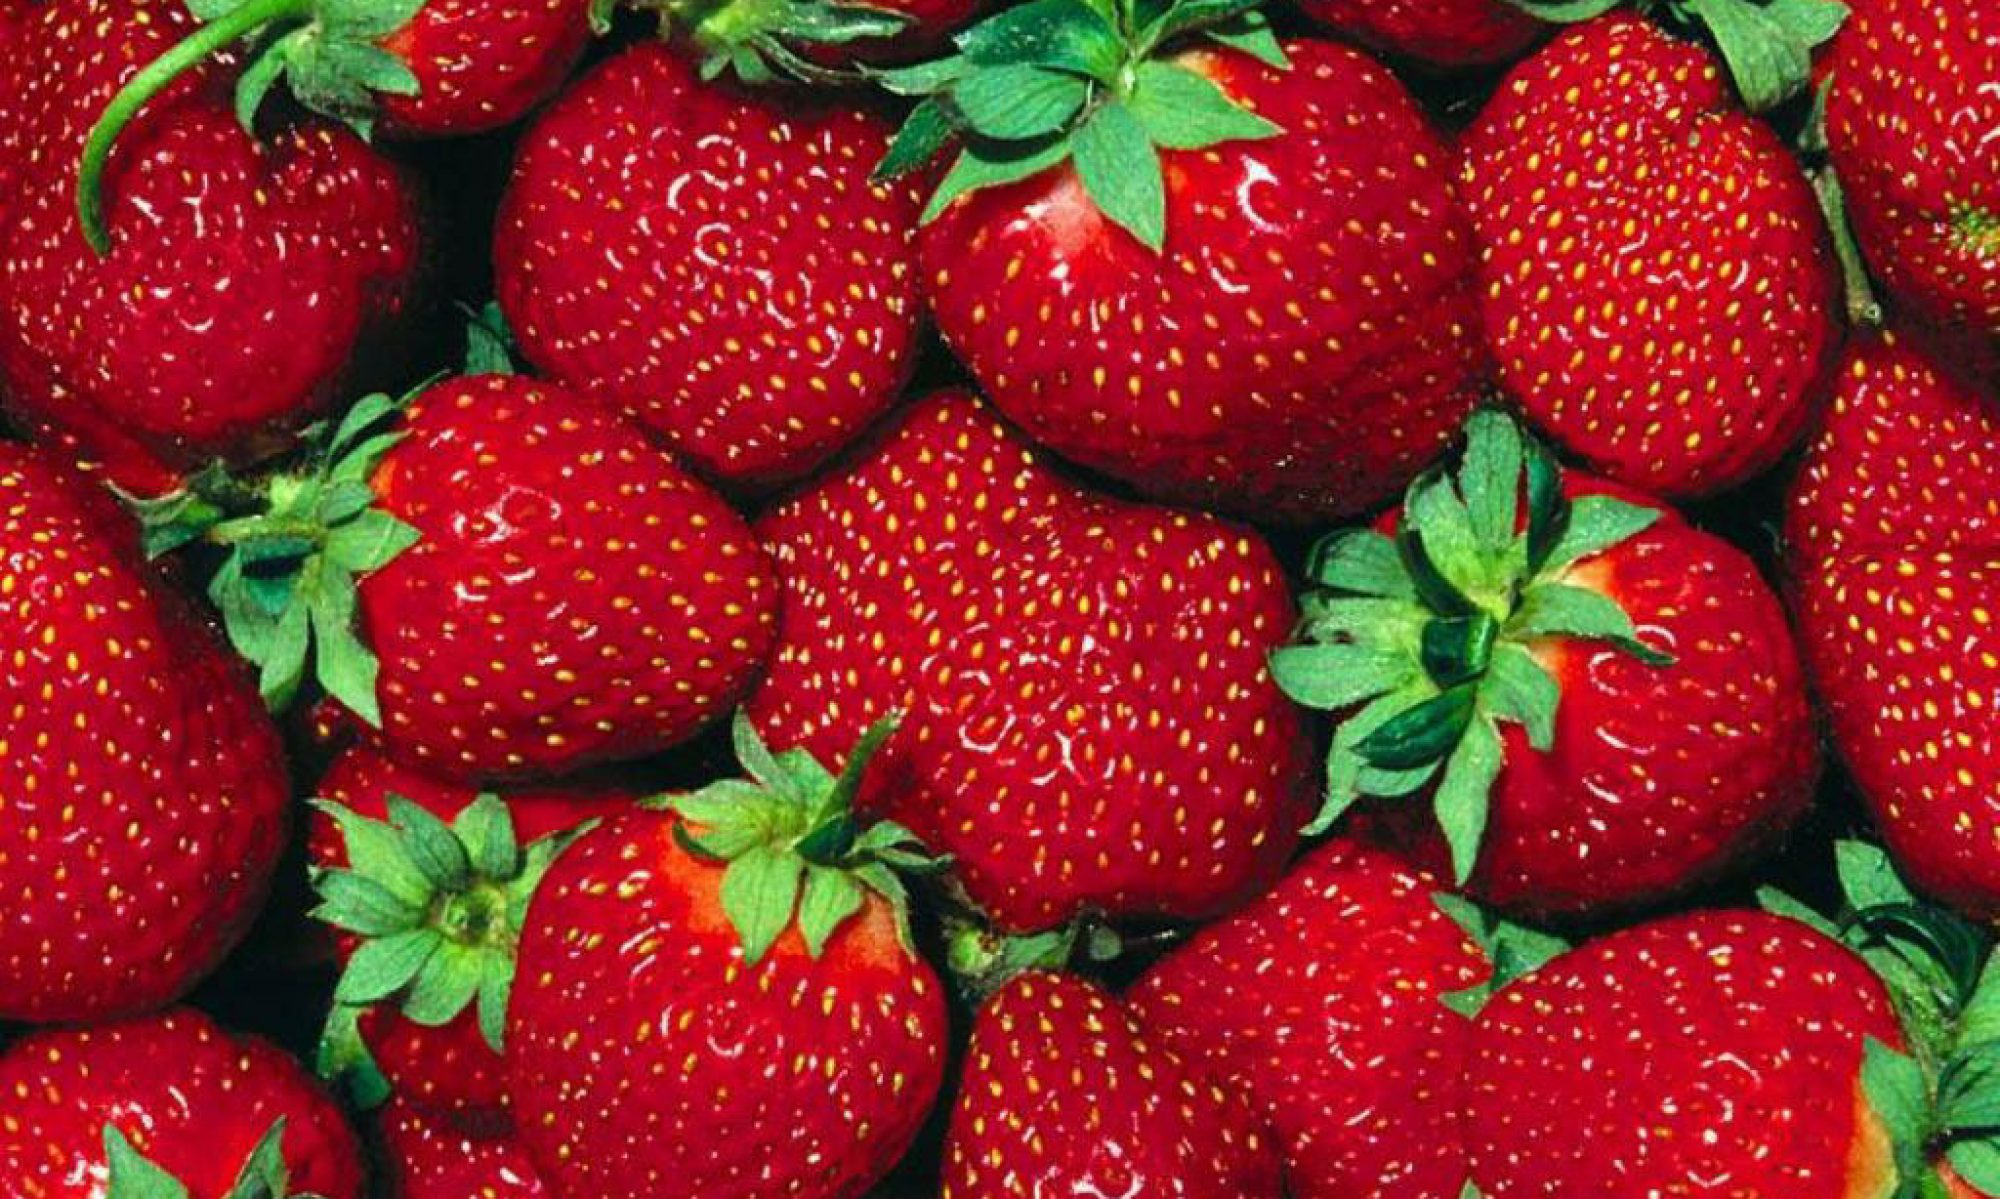 Paulridge Berry Farm - Napanee, Ontario - PYO Strawberry, Raspberry